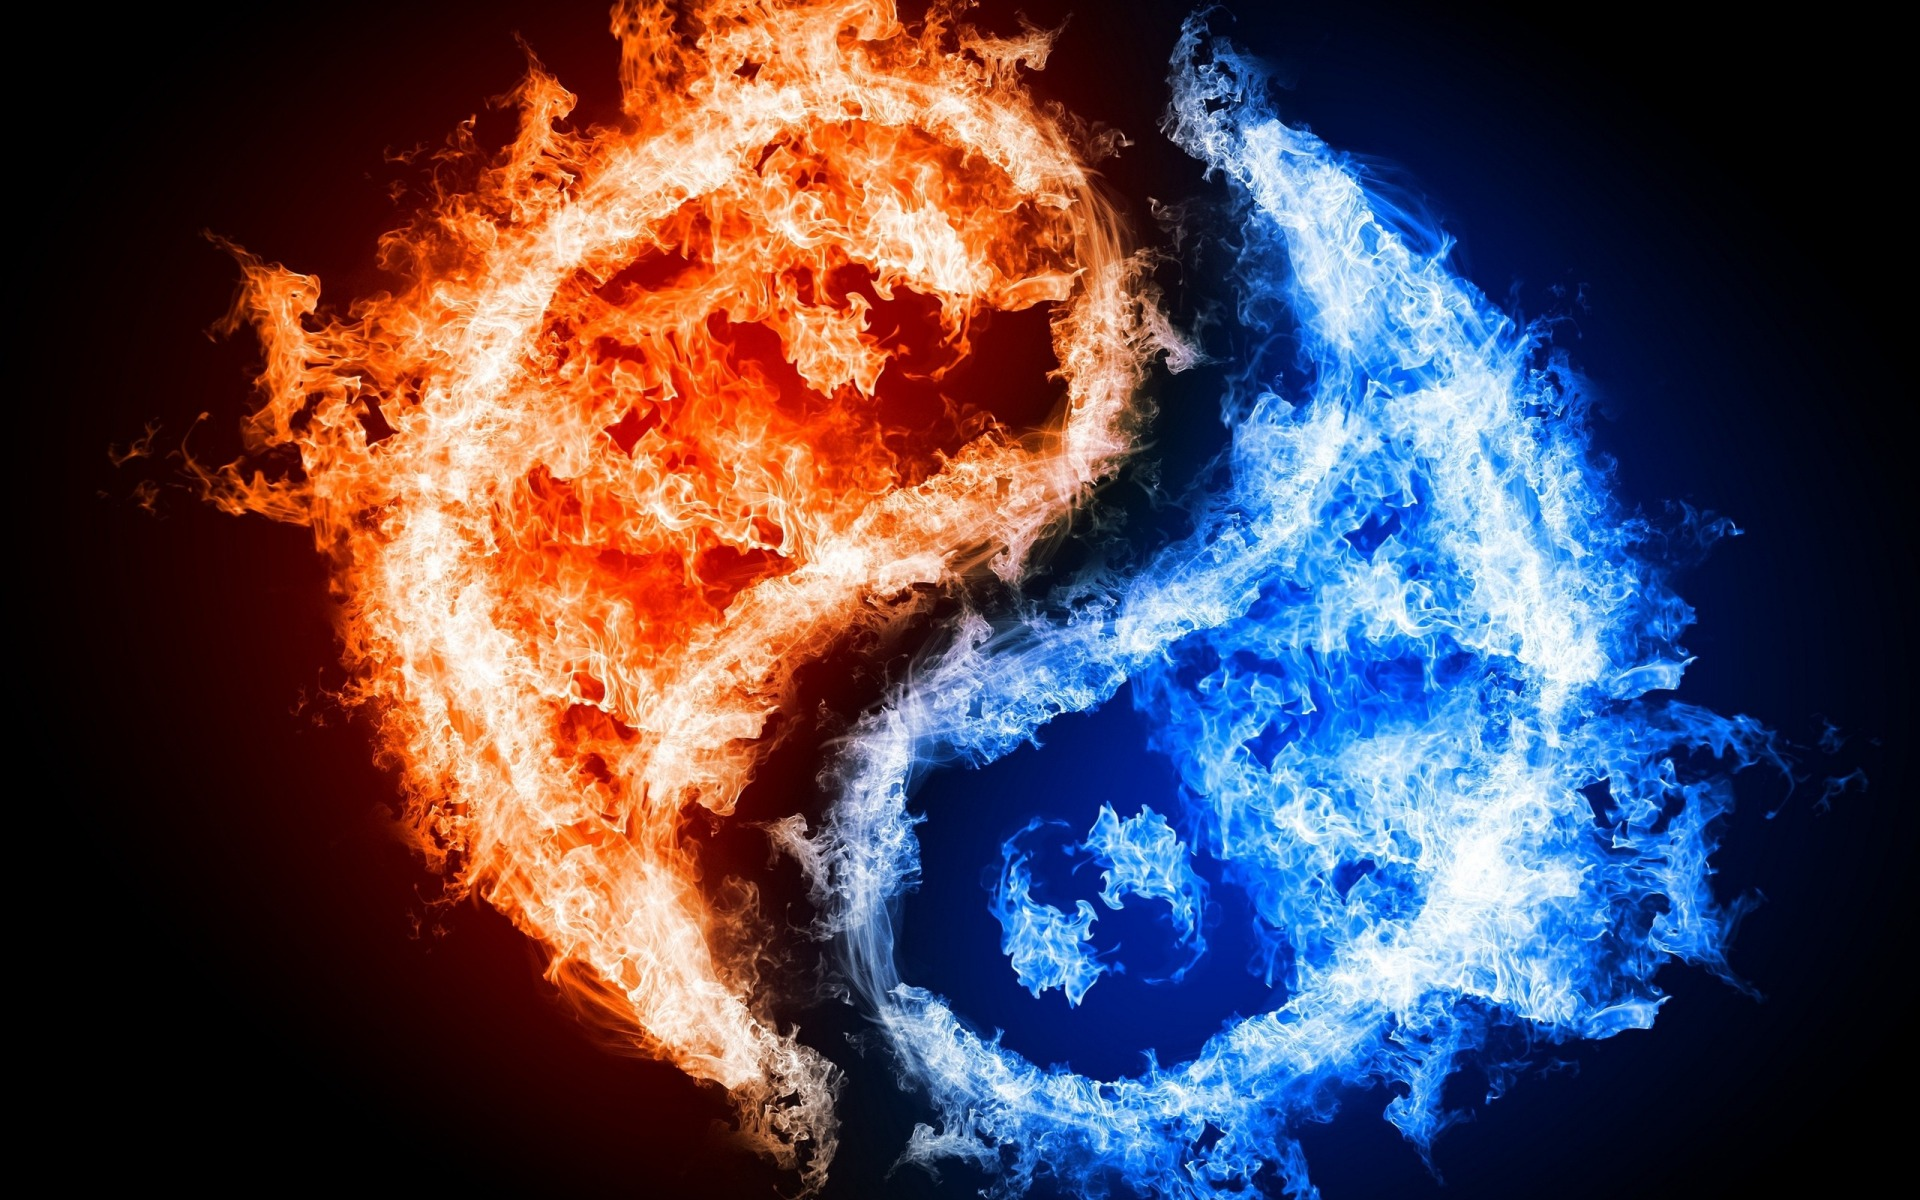 Blue And Red Fire Wallpaper Hd